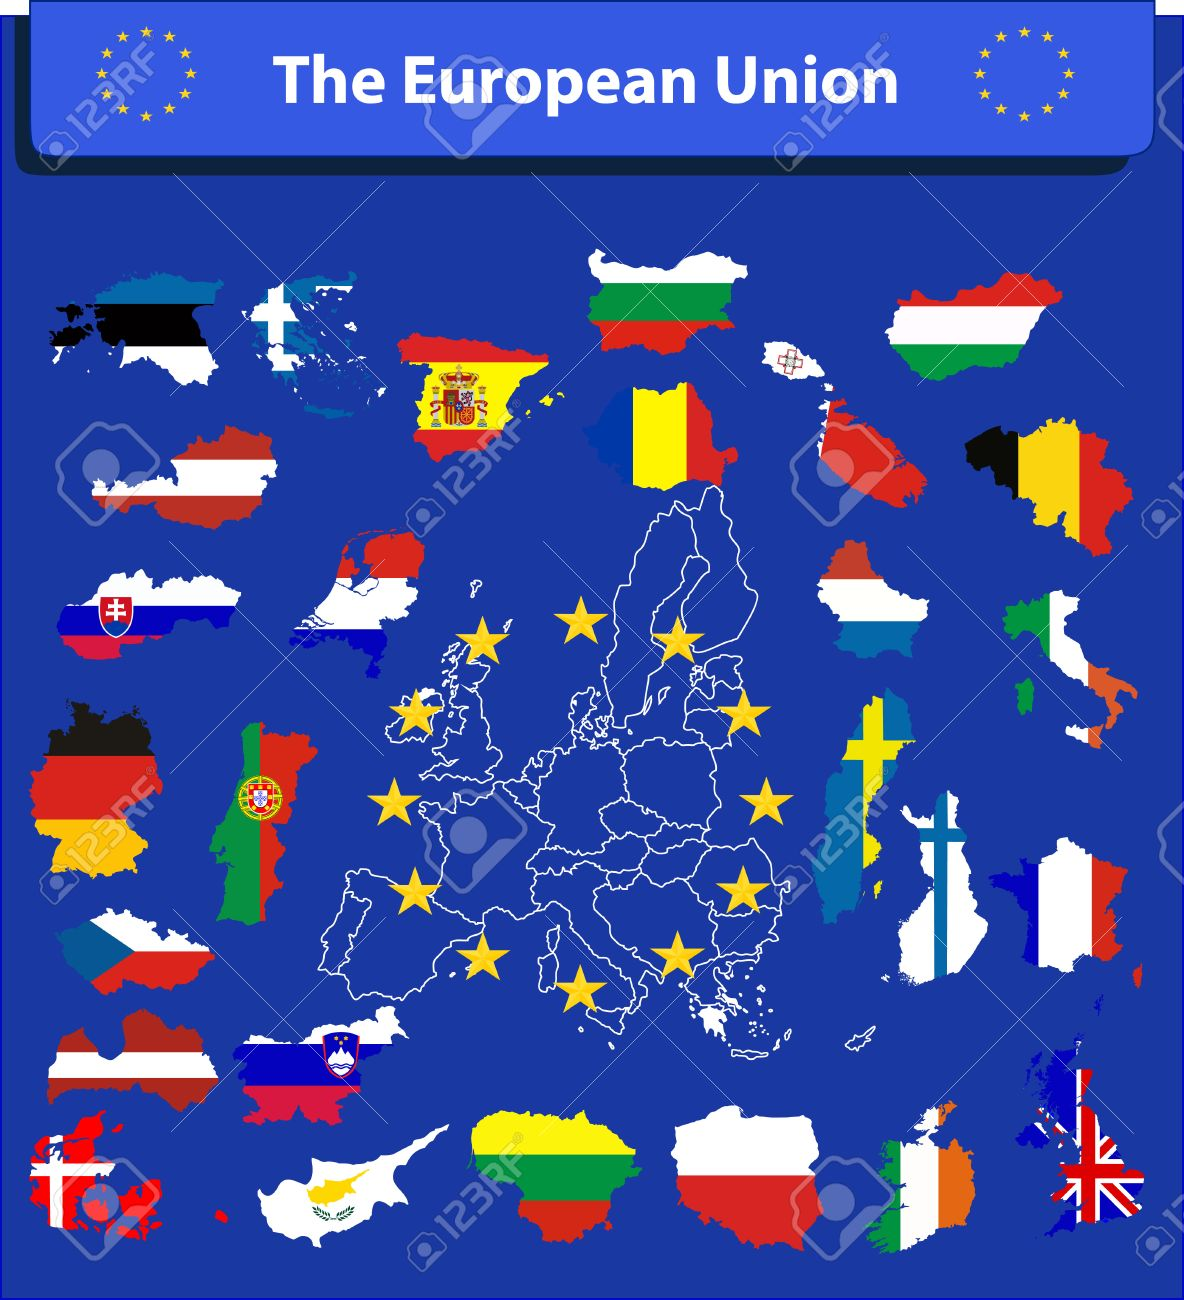 Europäische Union Karte.Stock Photo